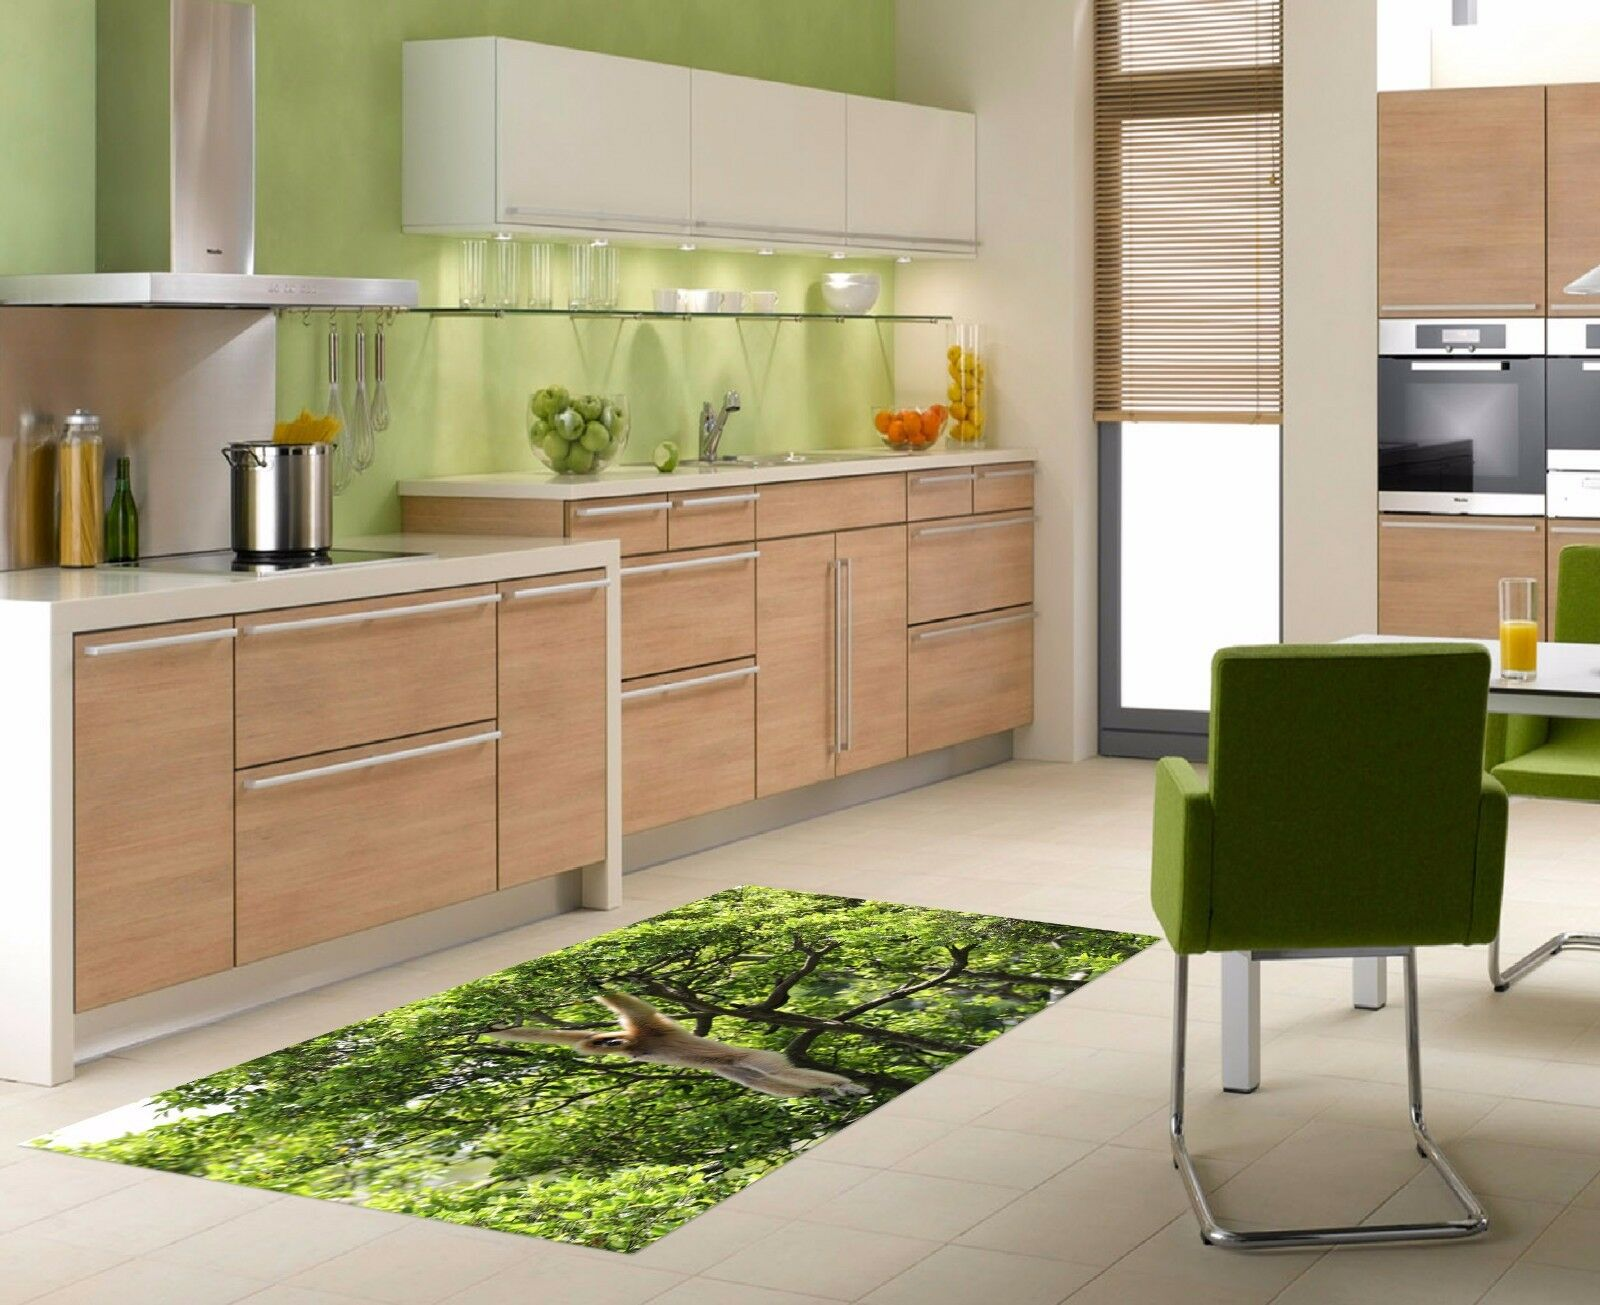 3D Tree Monkey 922 Kitchen Mat Floor Murals Wall Print Wall AJ WALLPAPER UK Kyra